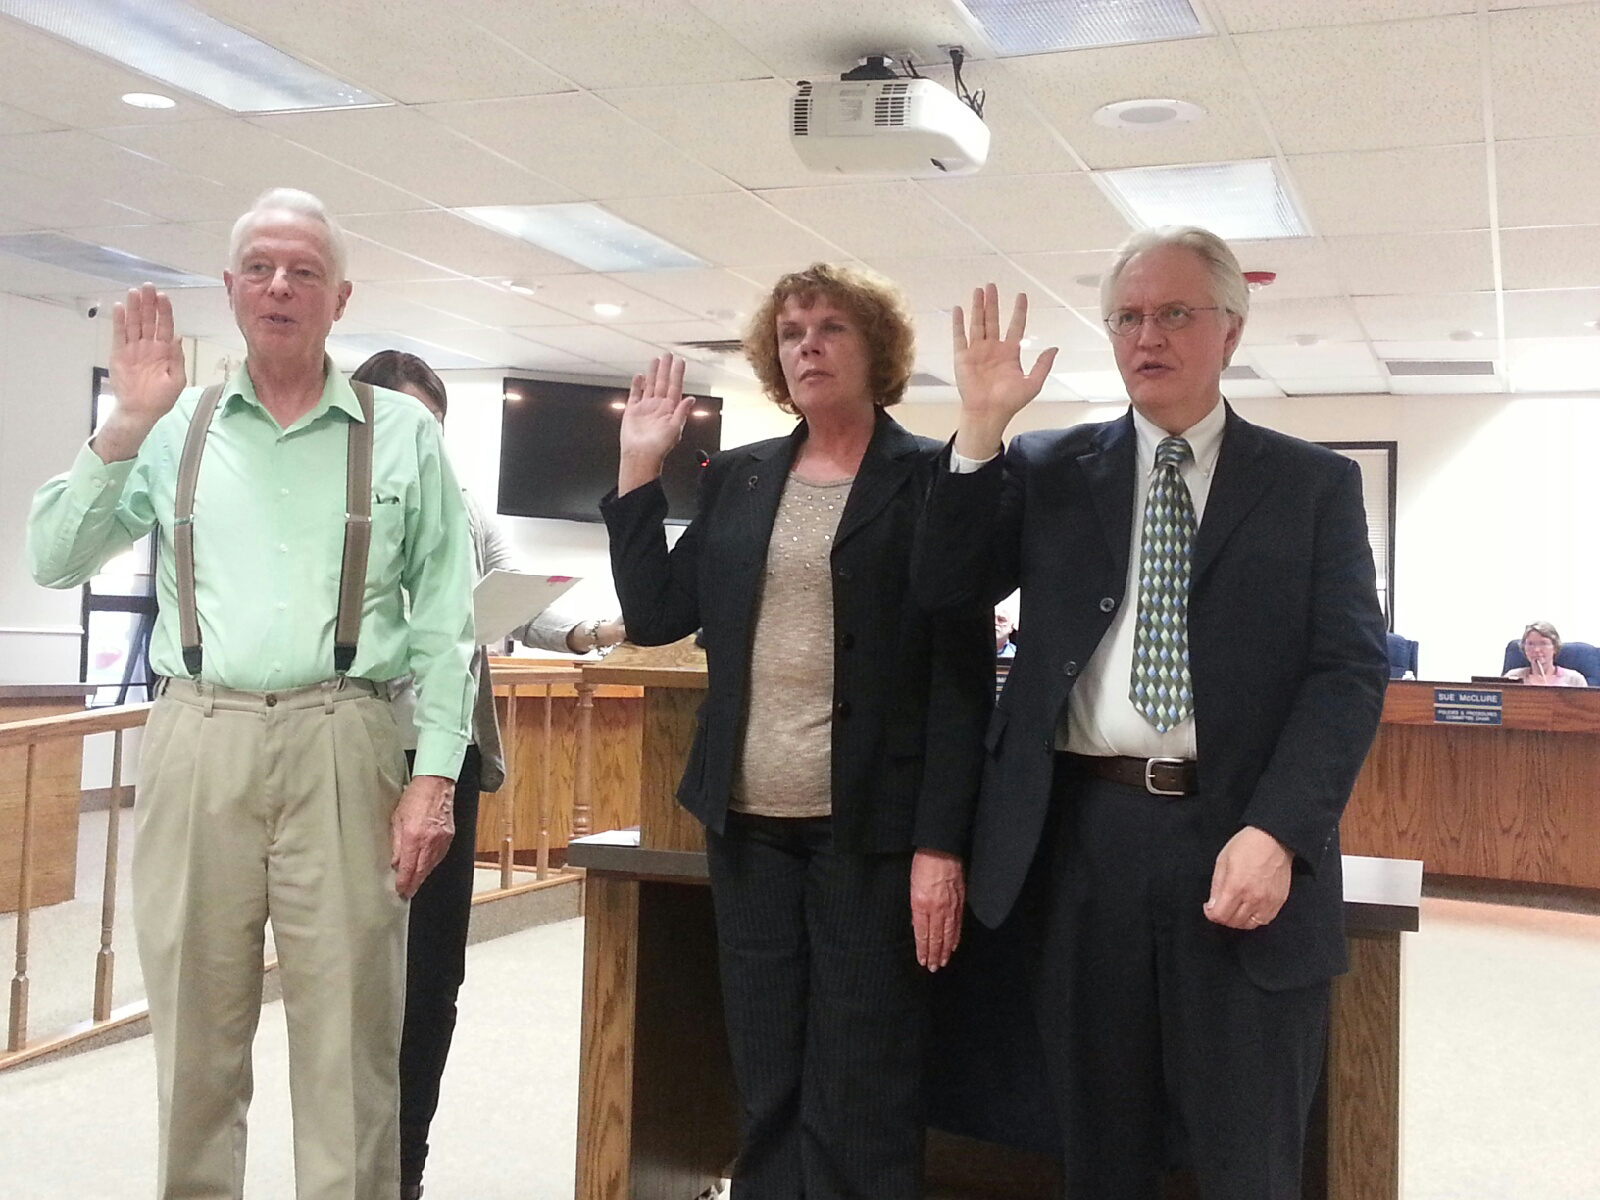 The three newly elected Kenai Peninsula Borough Assembly members are sworn in to office at Tuesday's assembly meeting in Soldotna. From left are Stan Welles, who will replace Charlie Pierce in the Sterling and Funny River district; Kelly Cooper, who will replace Bill Smith for the Homer district seat; and Blaine Gilman, who will replace outgoing Kenai district member Hal Smalley.-Photo by Dan Balmer, Morris News Service - Alaska